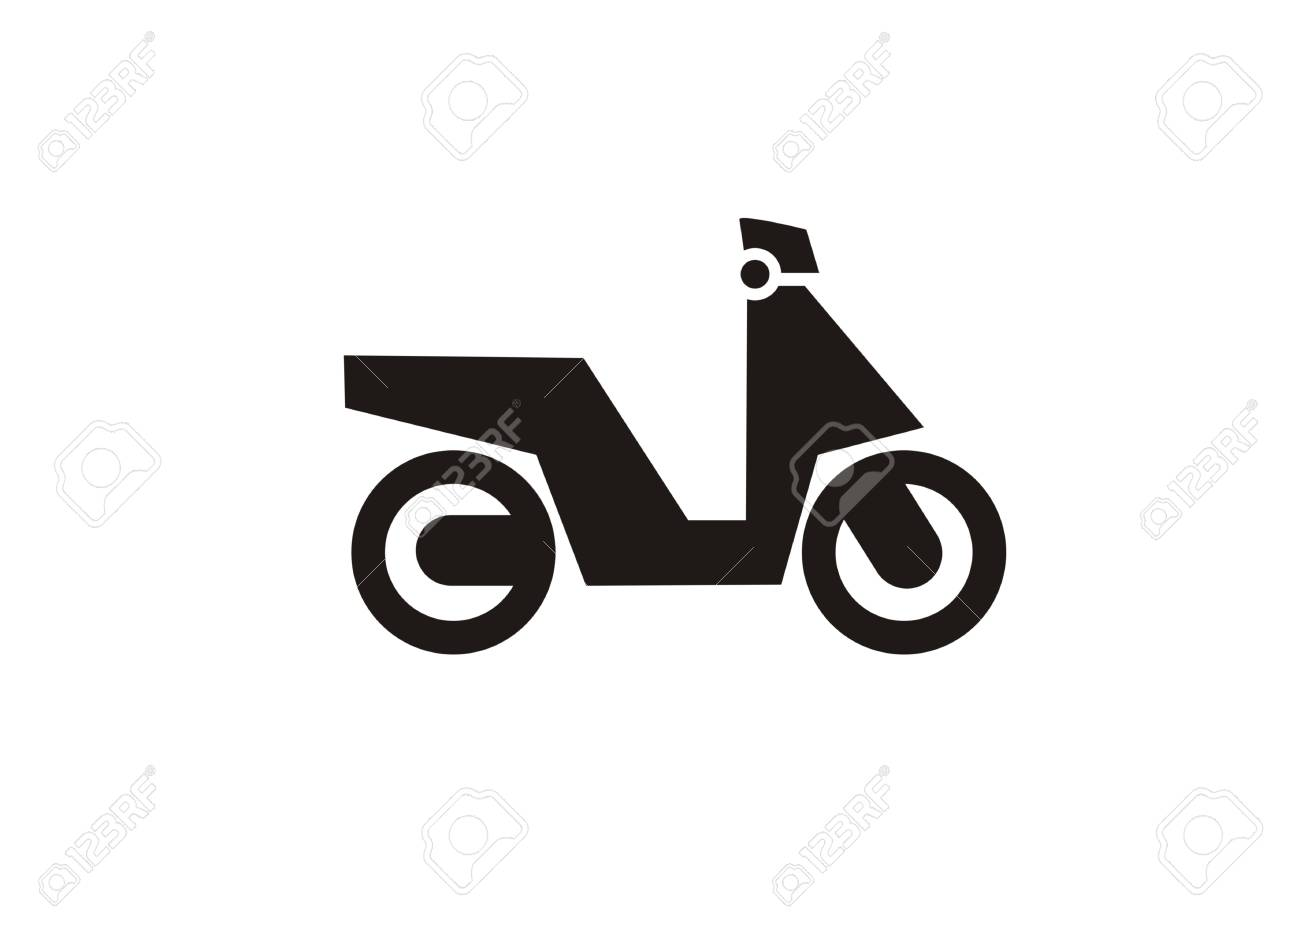 Automatic Motorcycle Simple Illustration Royalty Free Cliparts ...